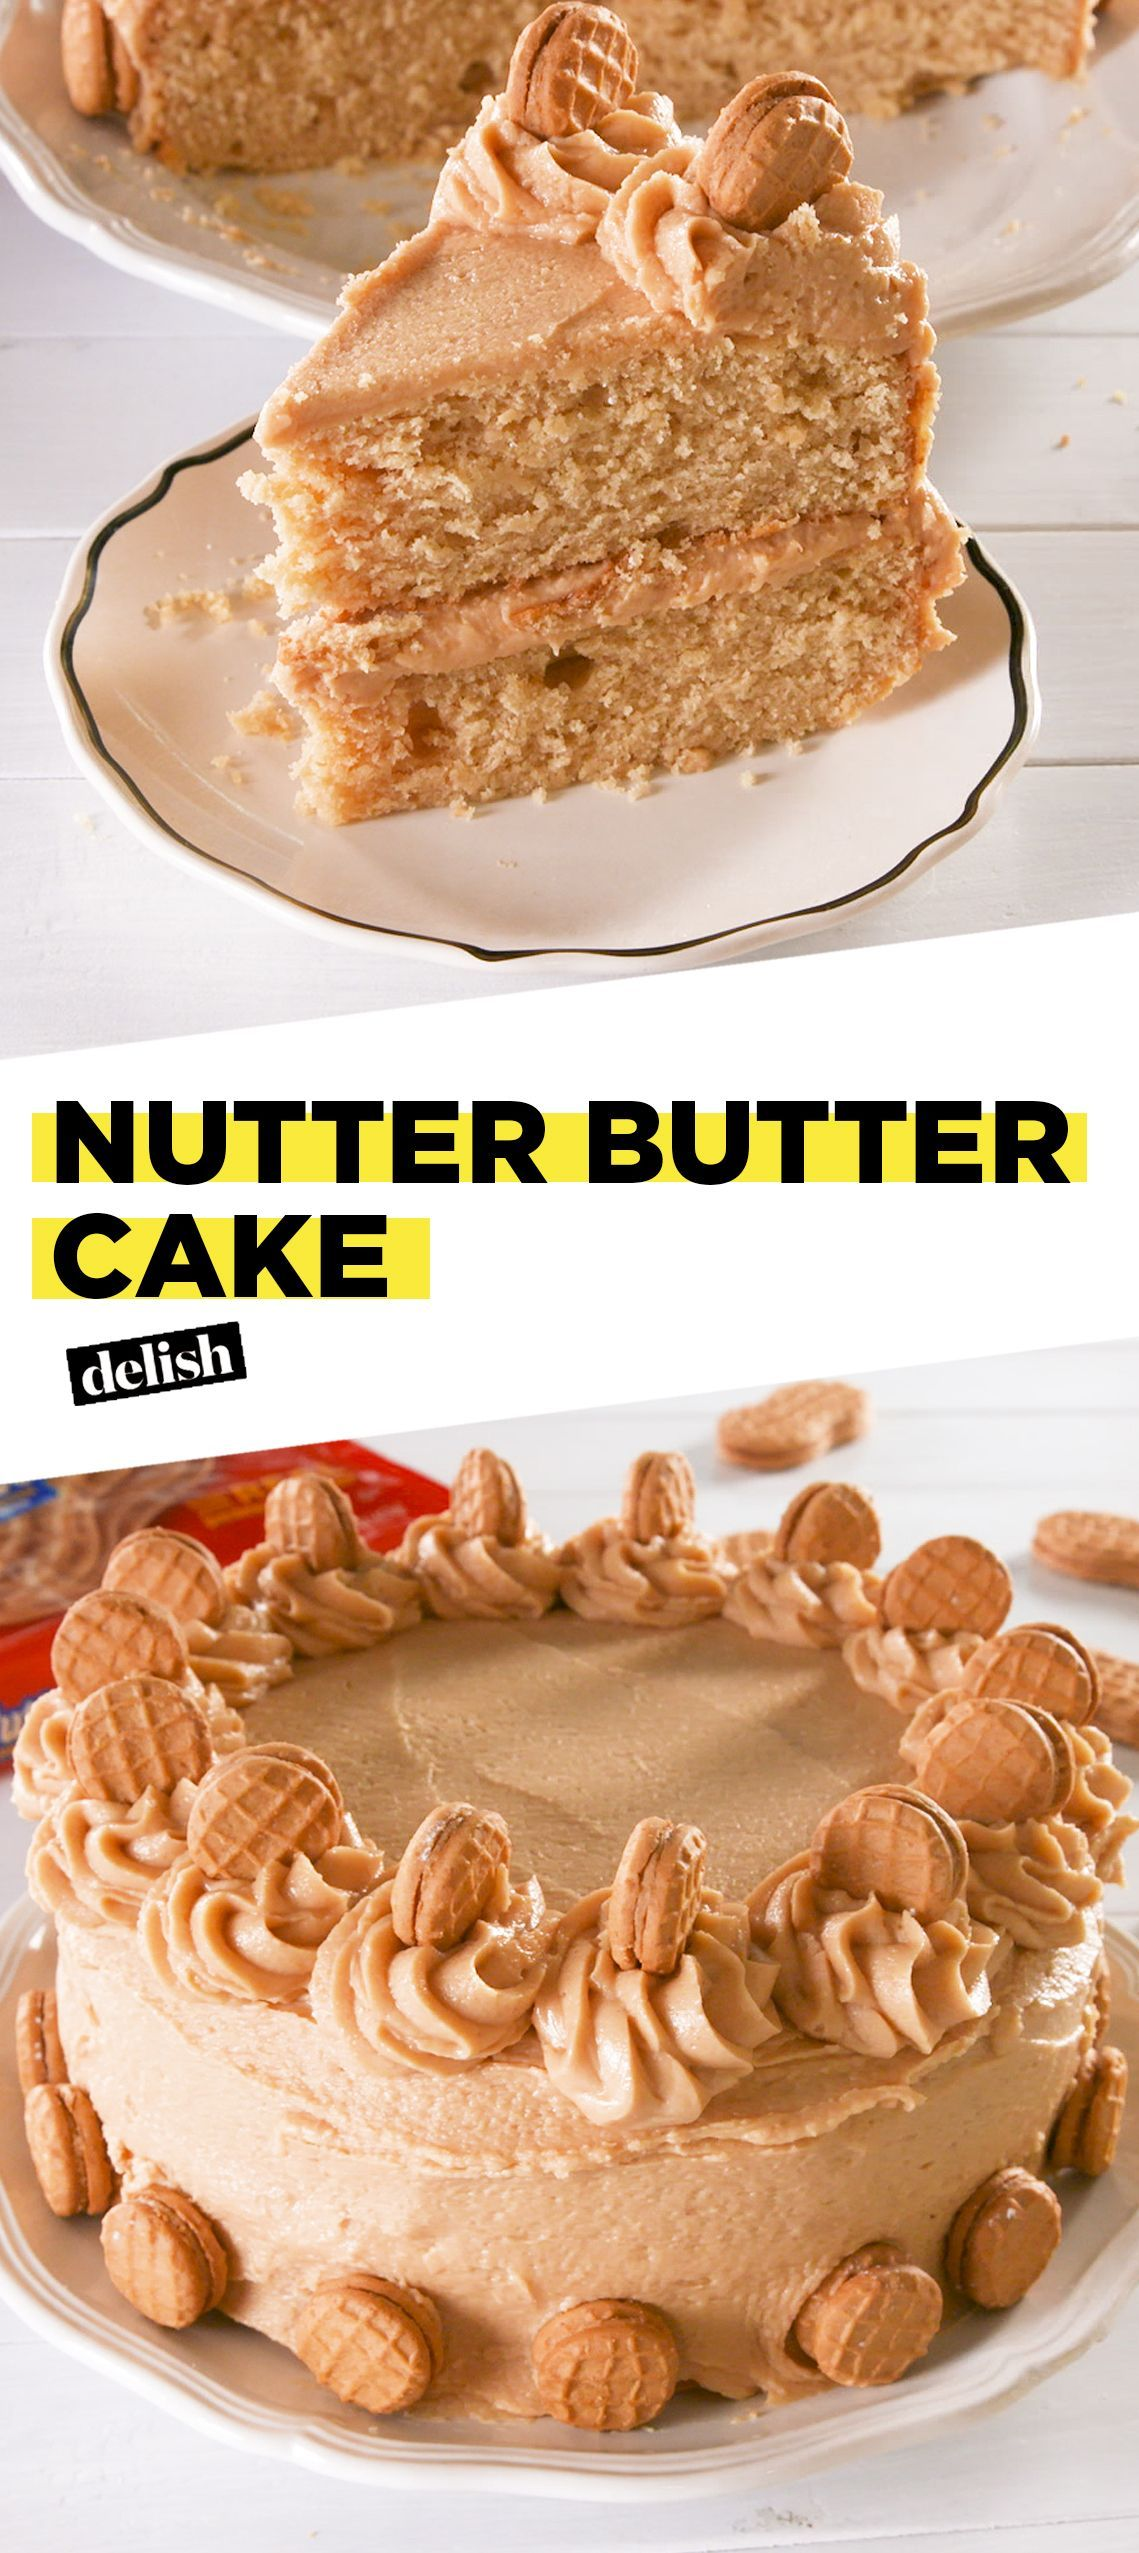 Nutter Butter Cake Recipe With Images Savoury Cake Peanut